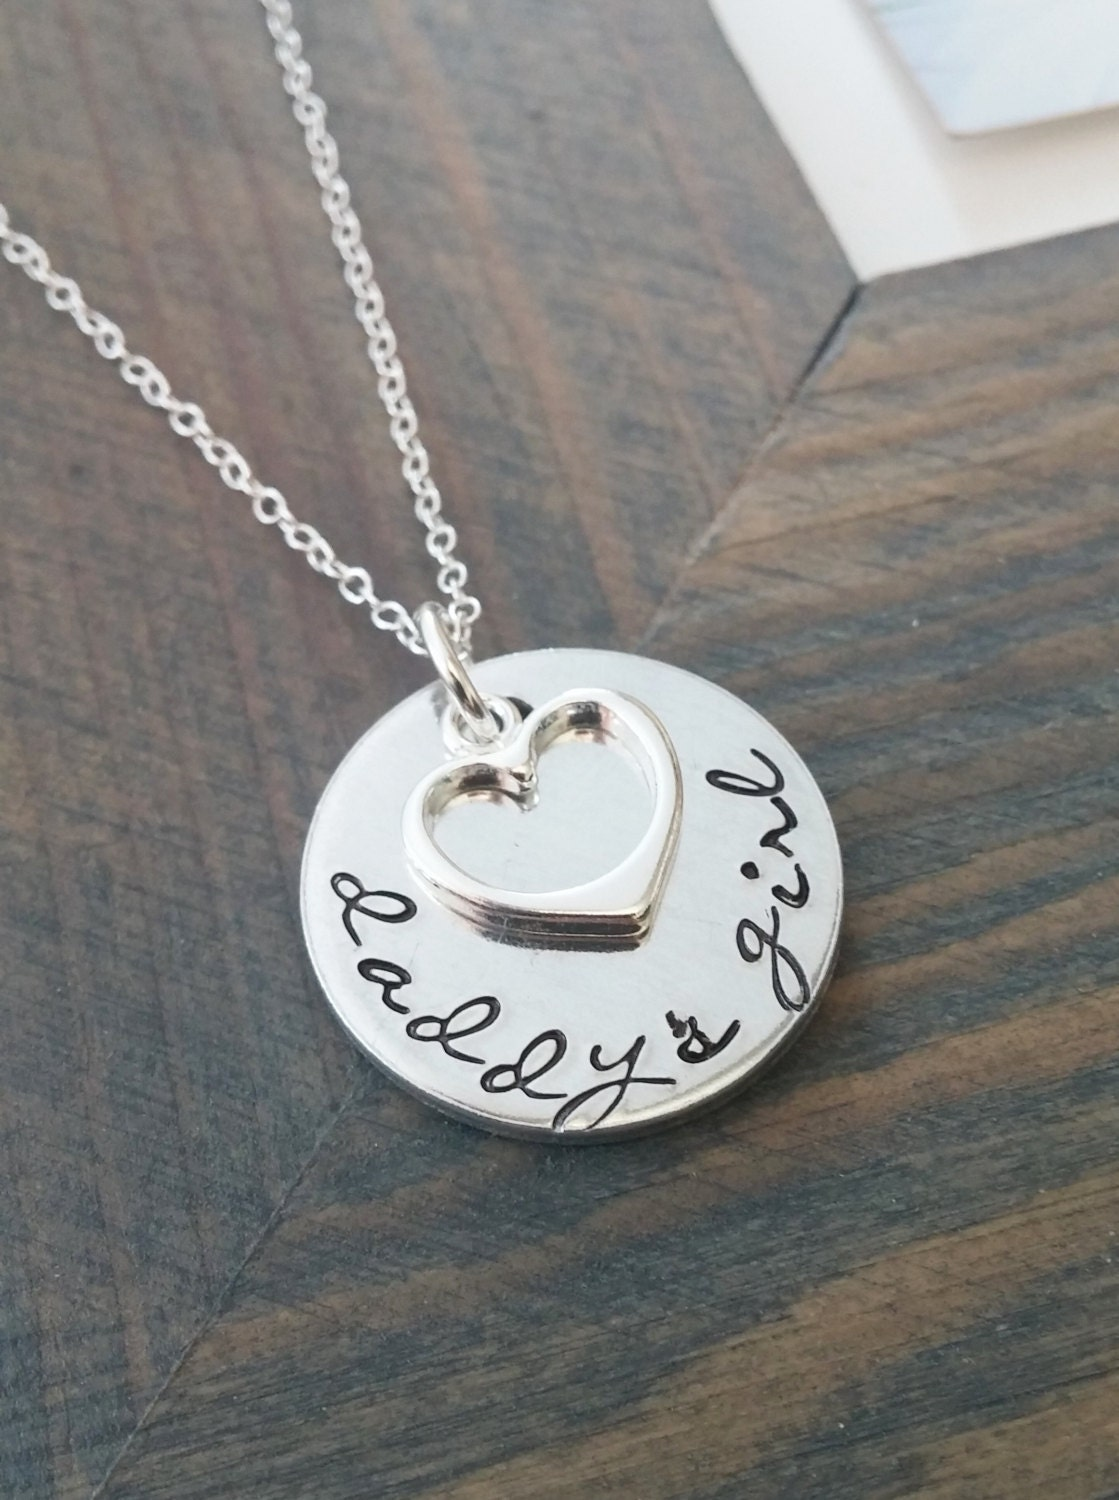 daddys girl necklace personalized jewelry hand stamped